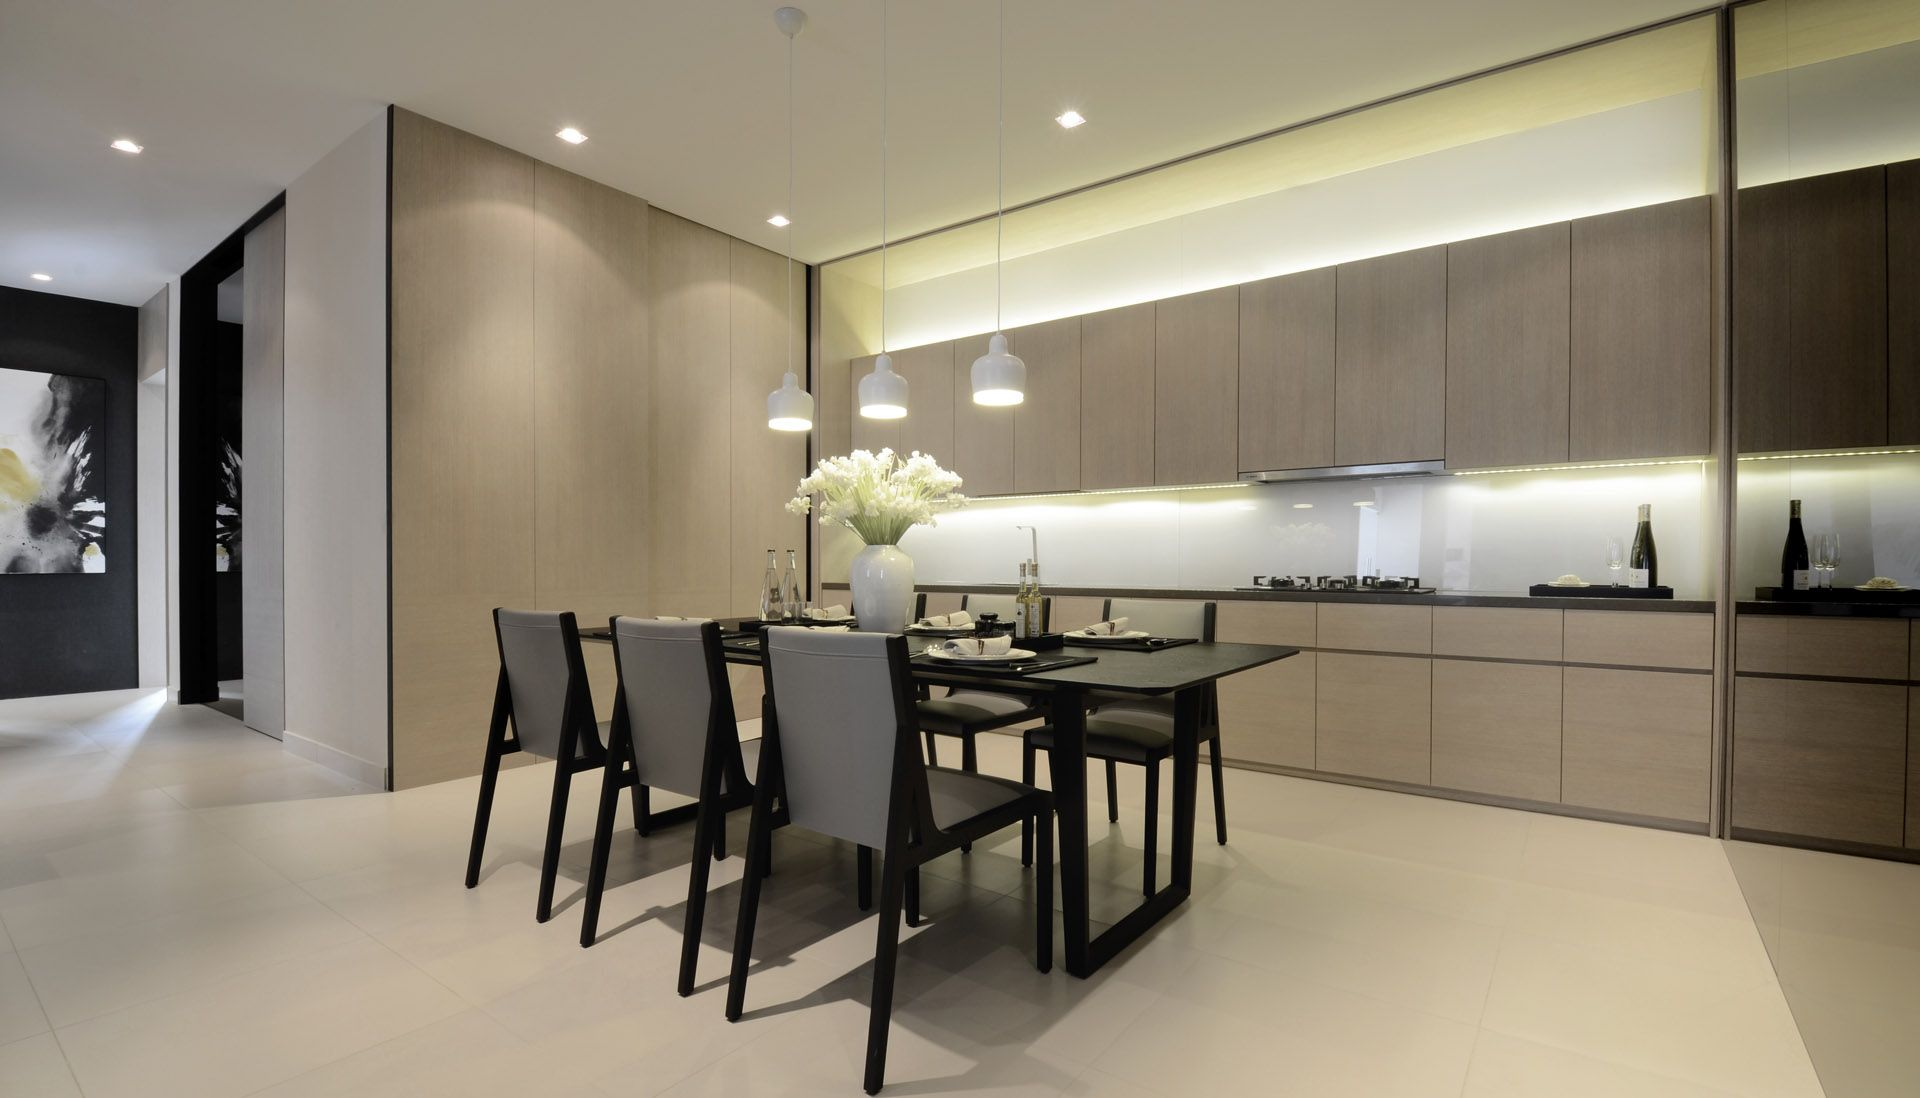 Kitchen Design Consultants Amazing 0932  Singapore Architectural And Interior Design  Kitchen Review